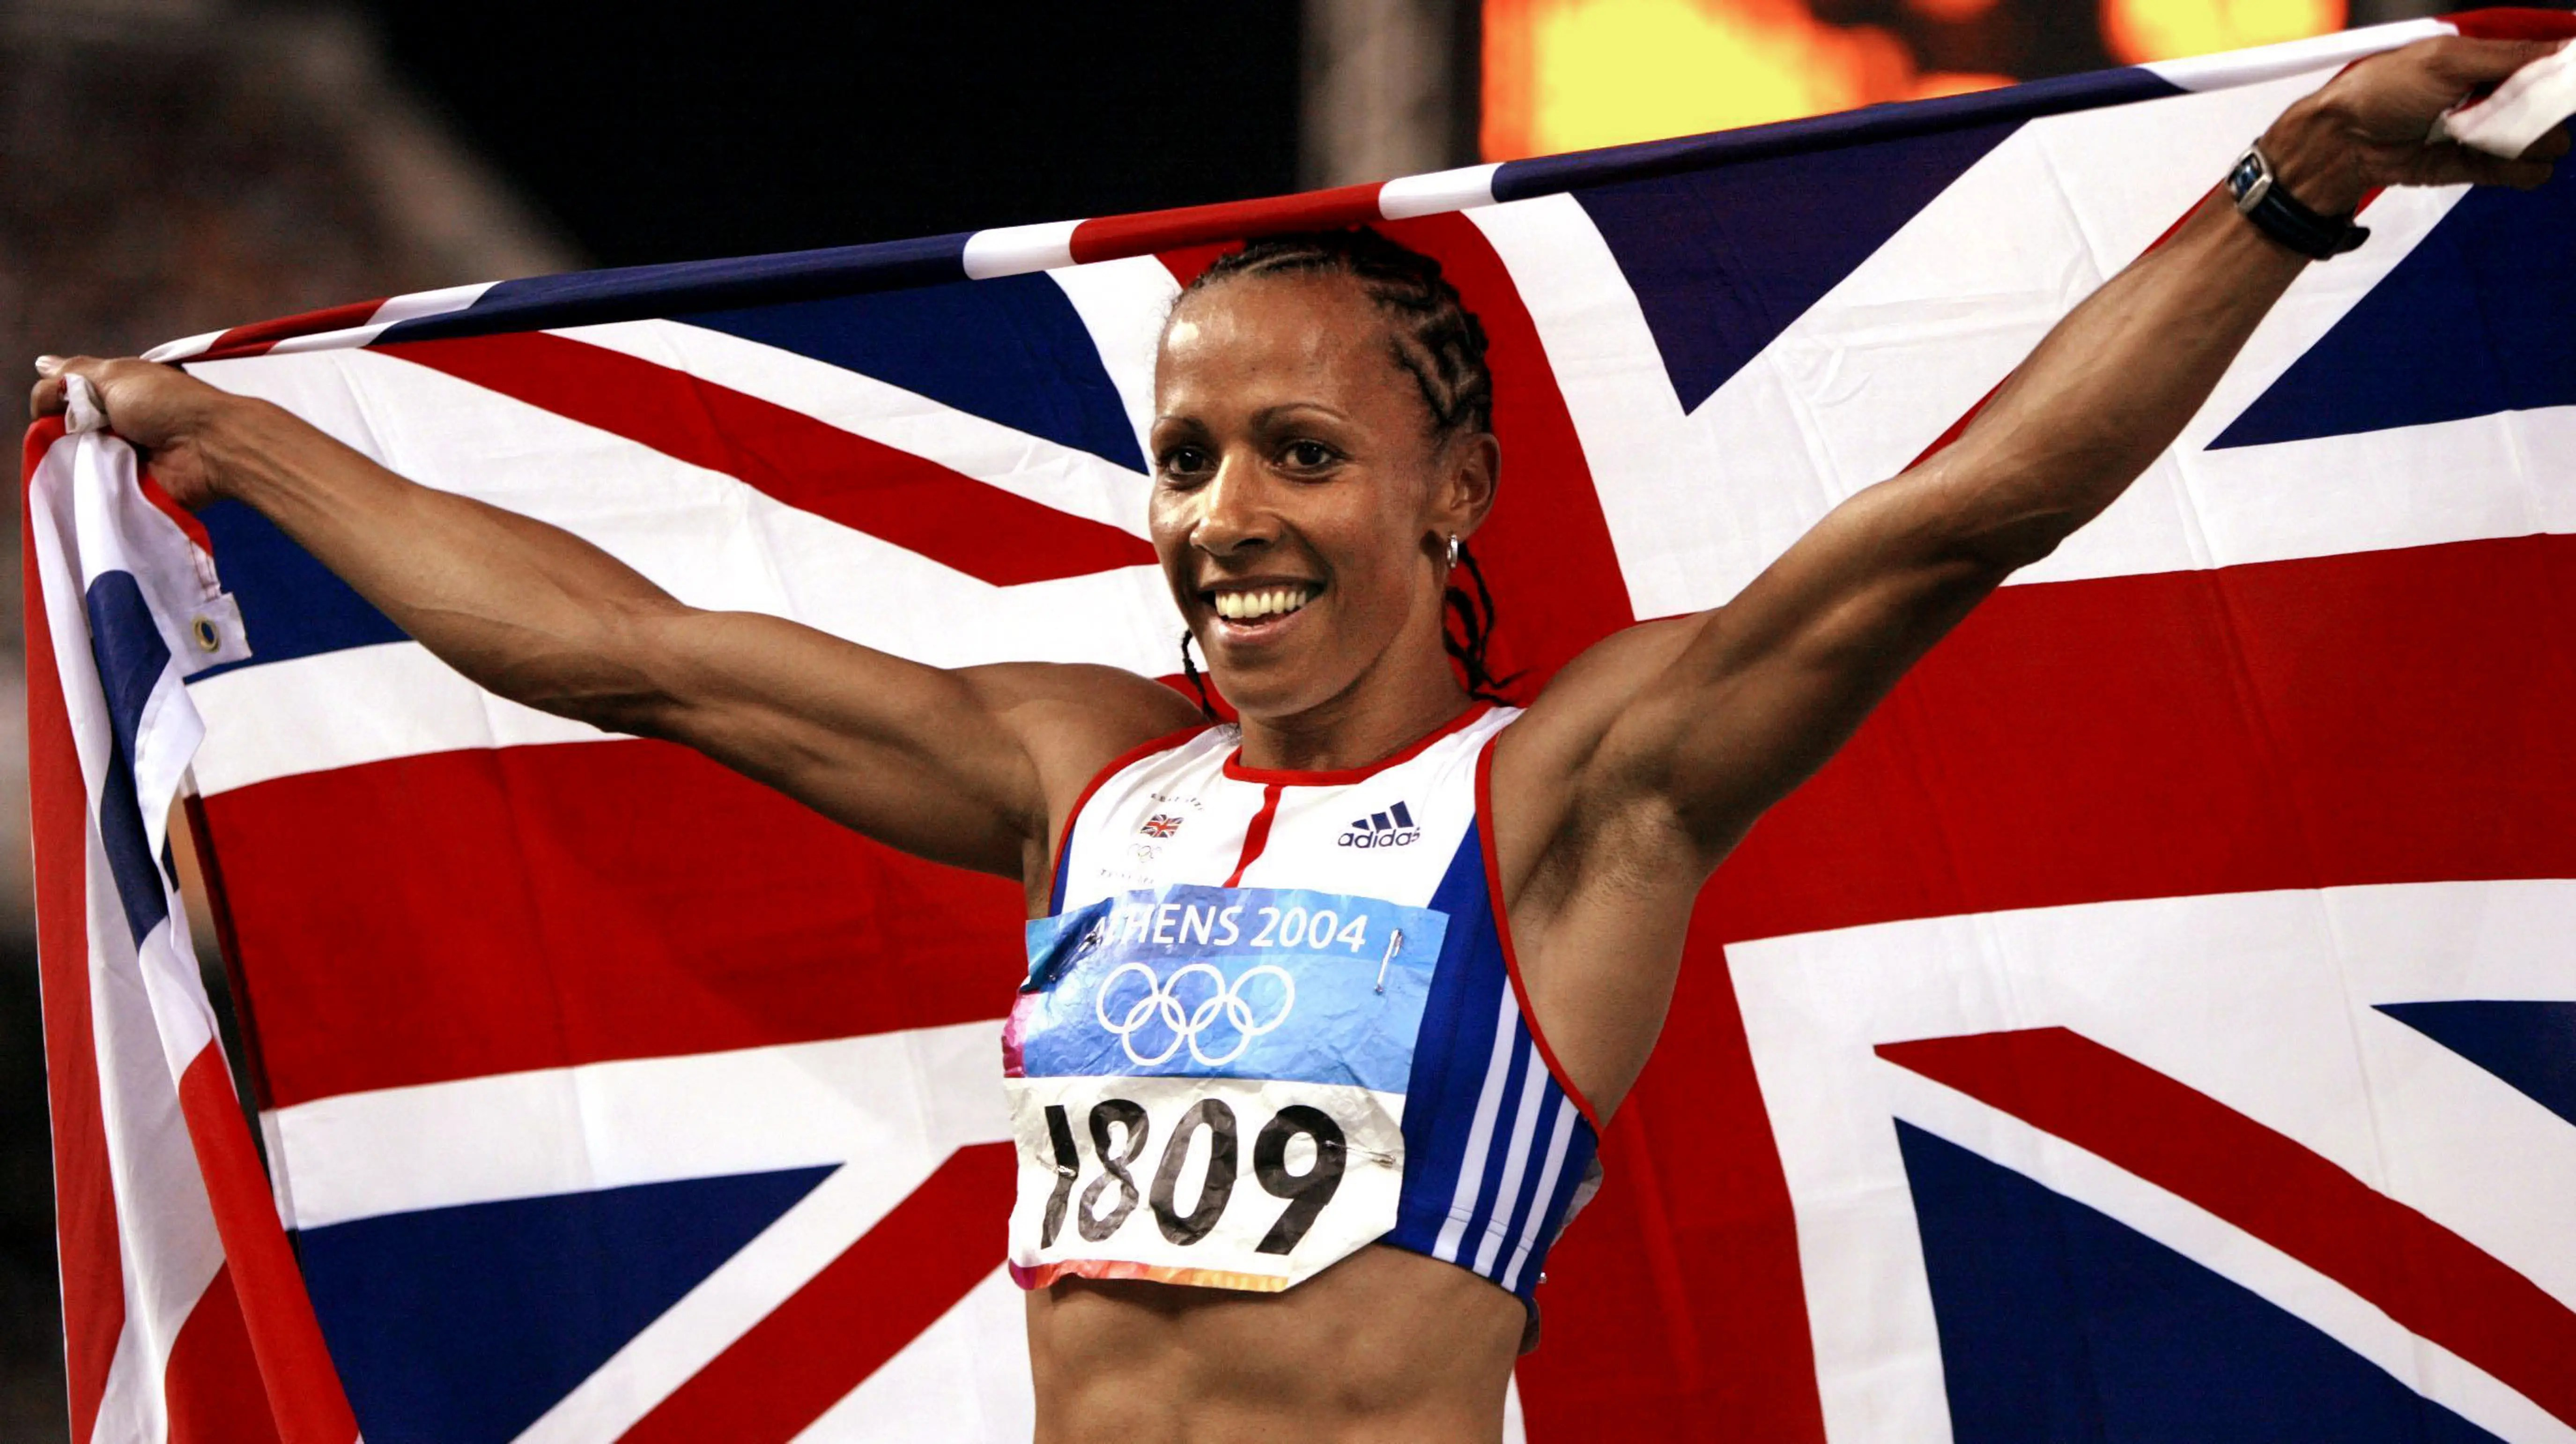 Athens, 2004: The games returned to their home for the first time in over 100 years. Team GB had pinned their hopes of a gold medal on Kelly Holmes. She later went on to win the 1,500 metres as well as the 800 metres, and was named the BBC Sports Personality of The Year.